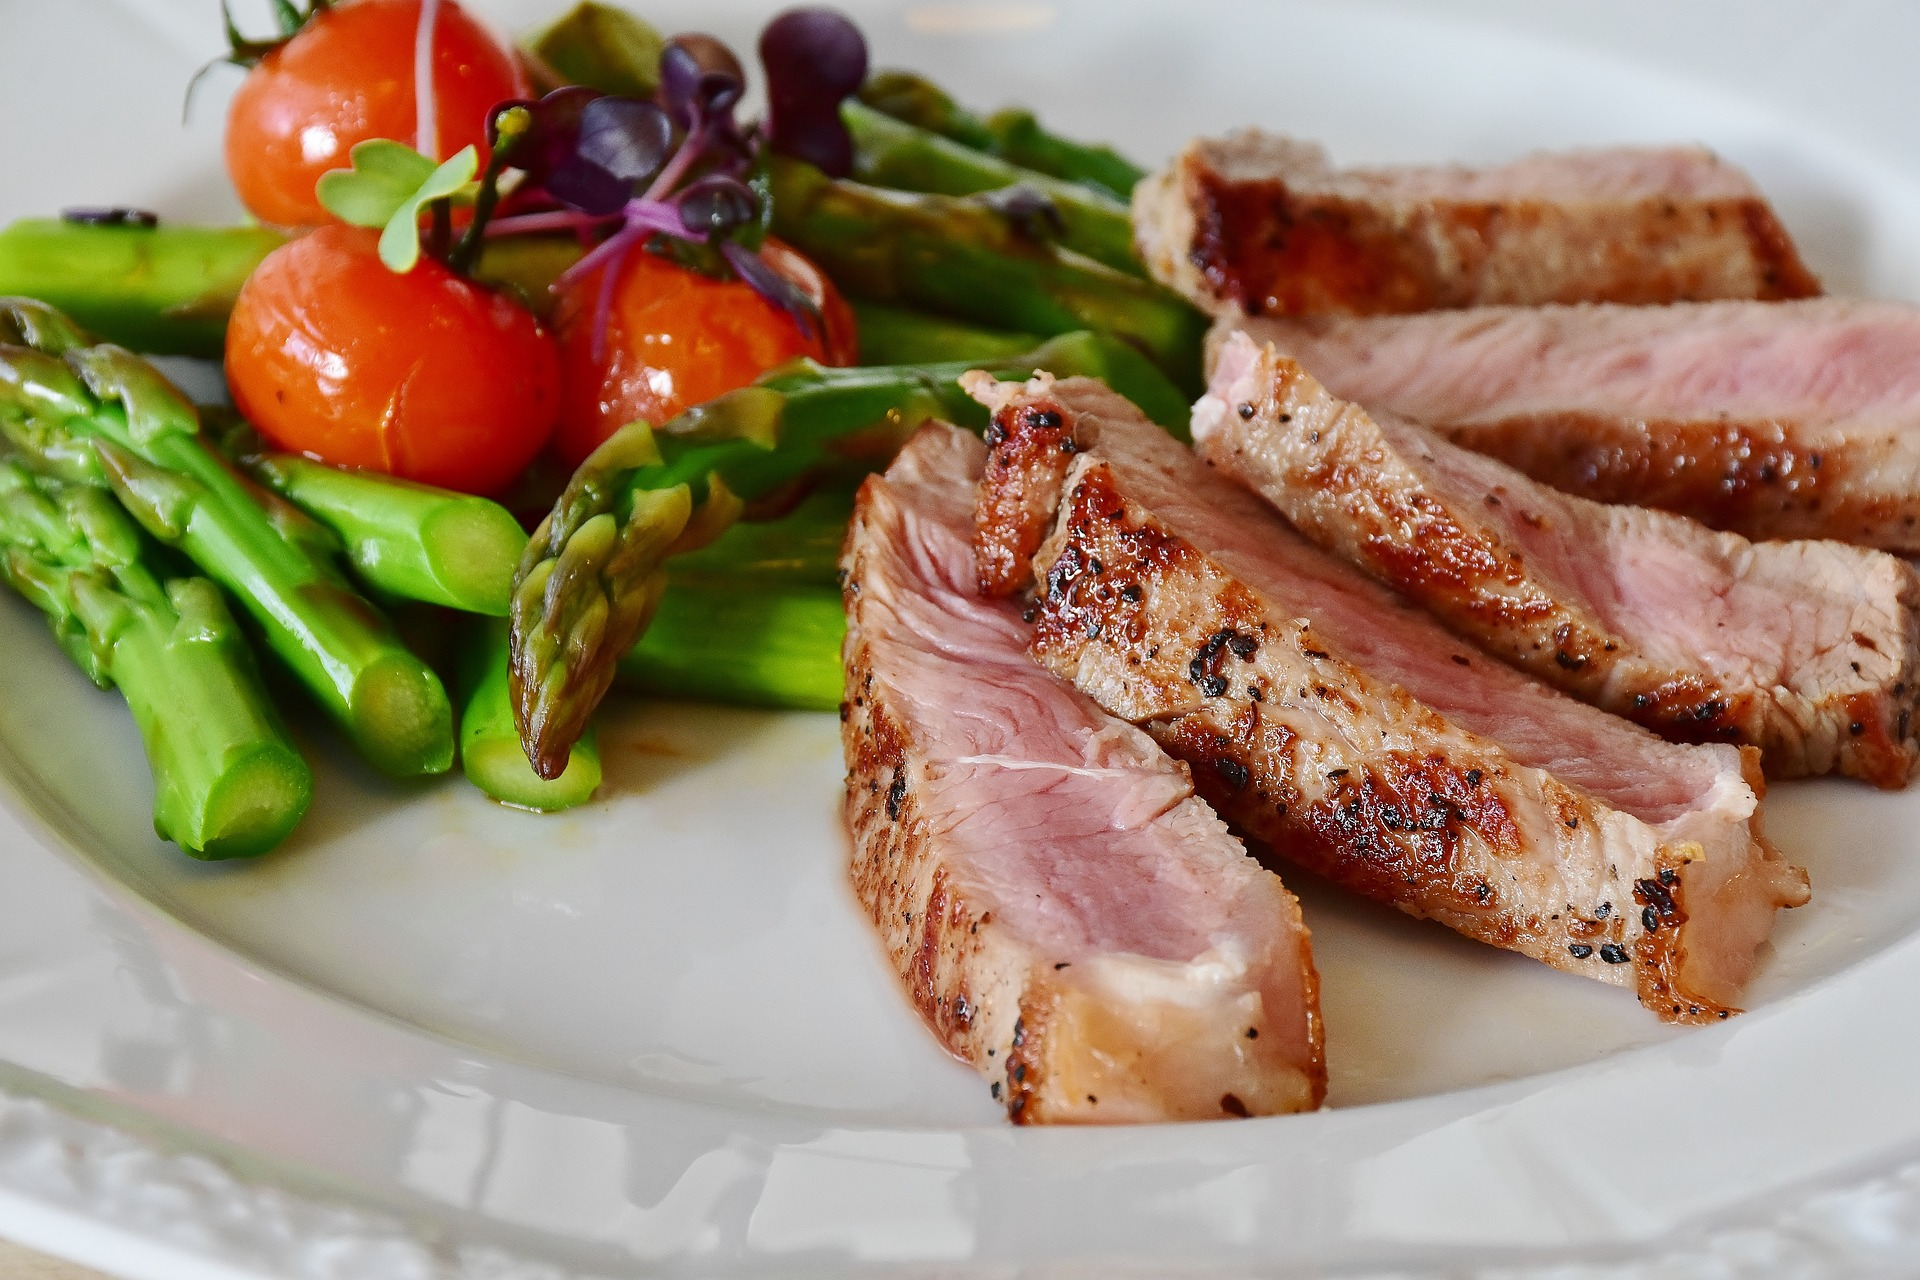 Low carb diet: Can it help you lose weight?